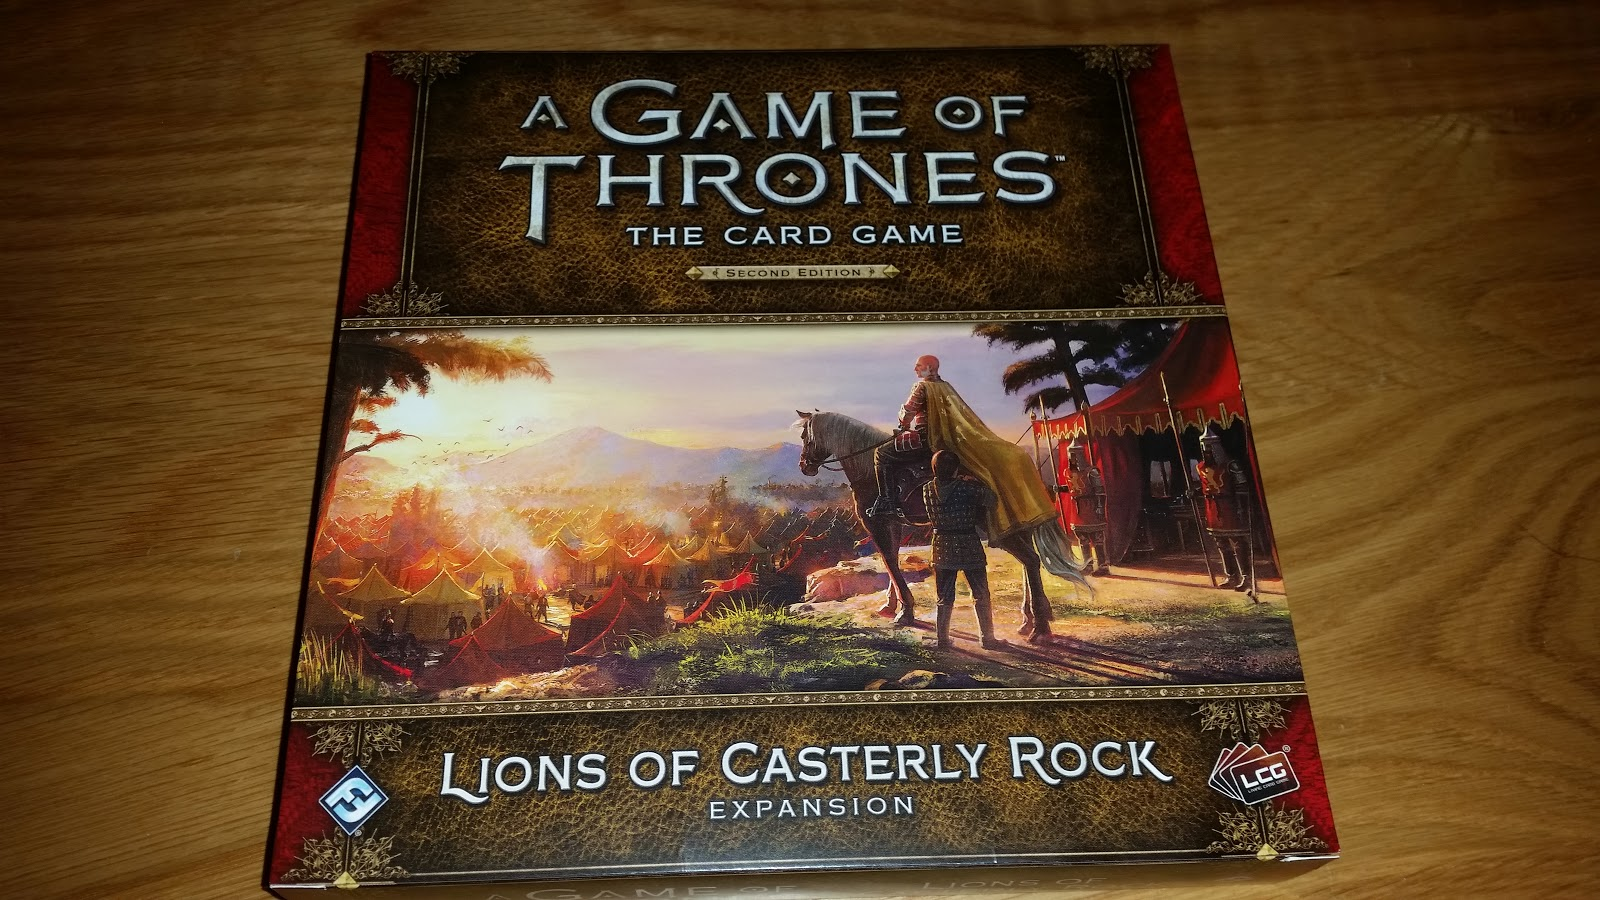 A Game Of Thrones:The Board Game - facebook.com